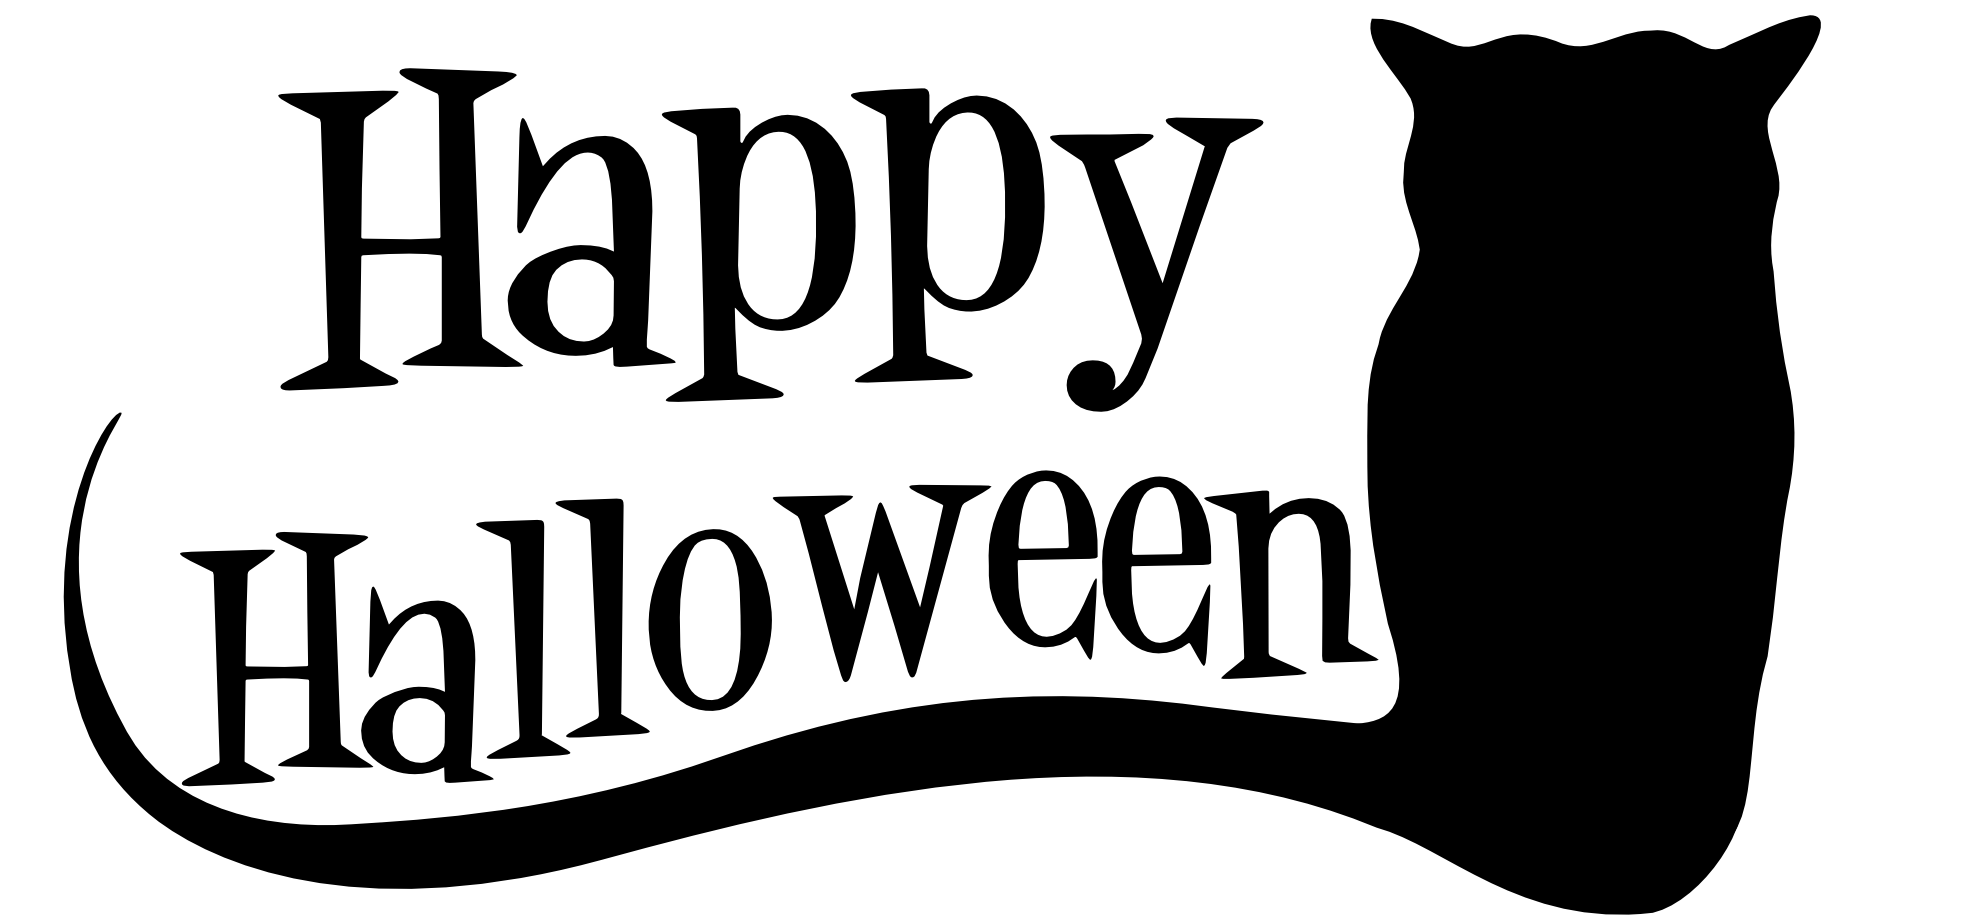 Happy halloween black and white clipart picture freeuse library clipartist.net » Clip Art » h Halloween SVG picture freeuse library